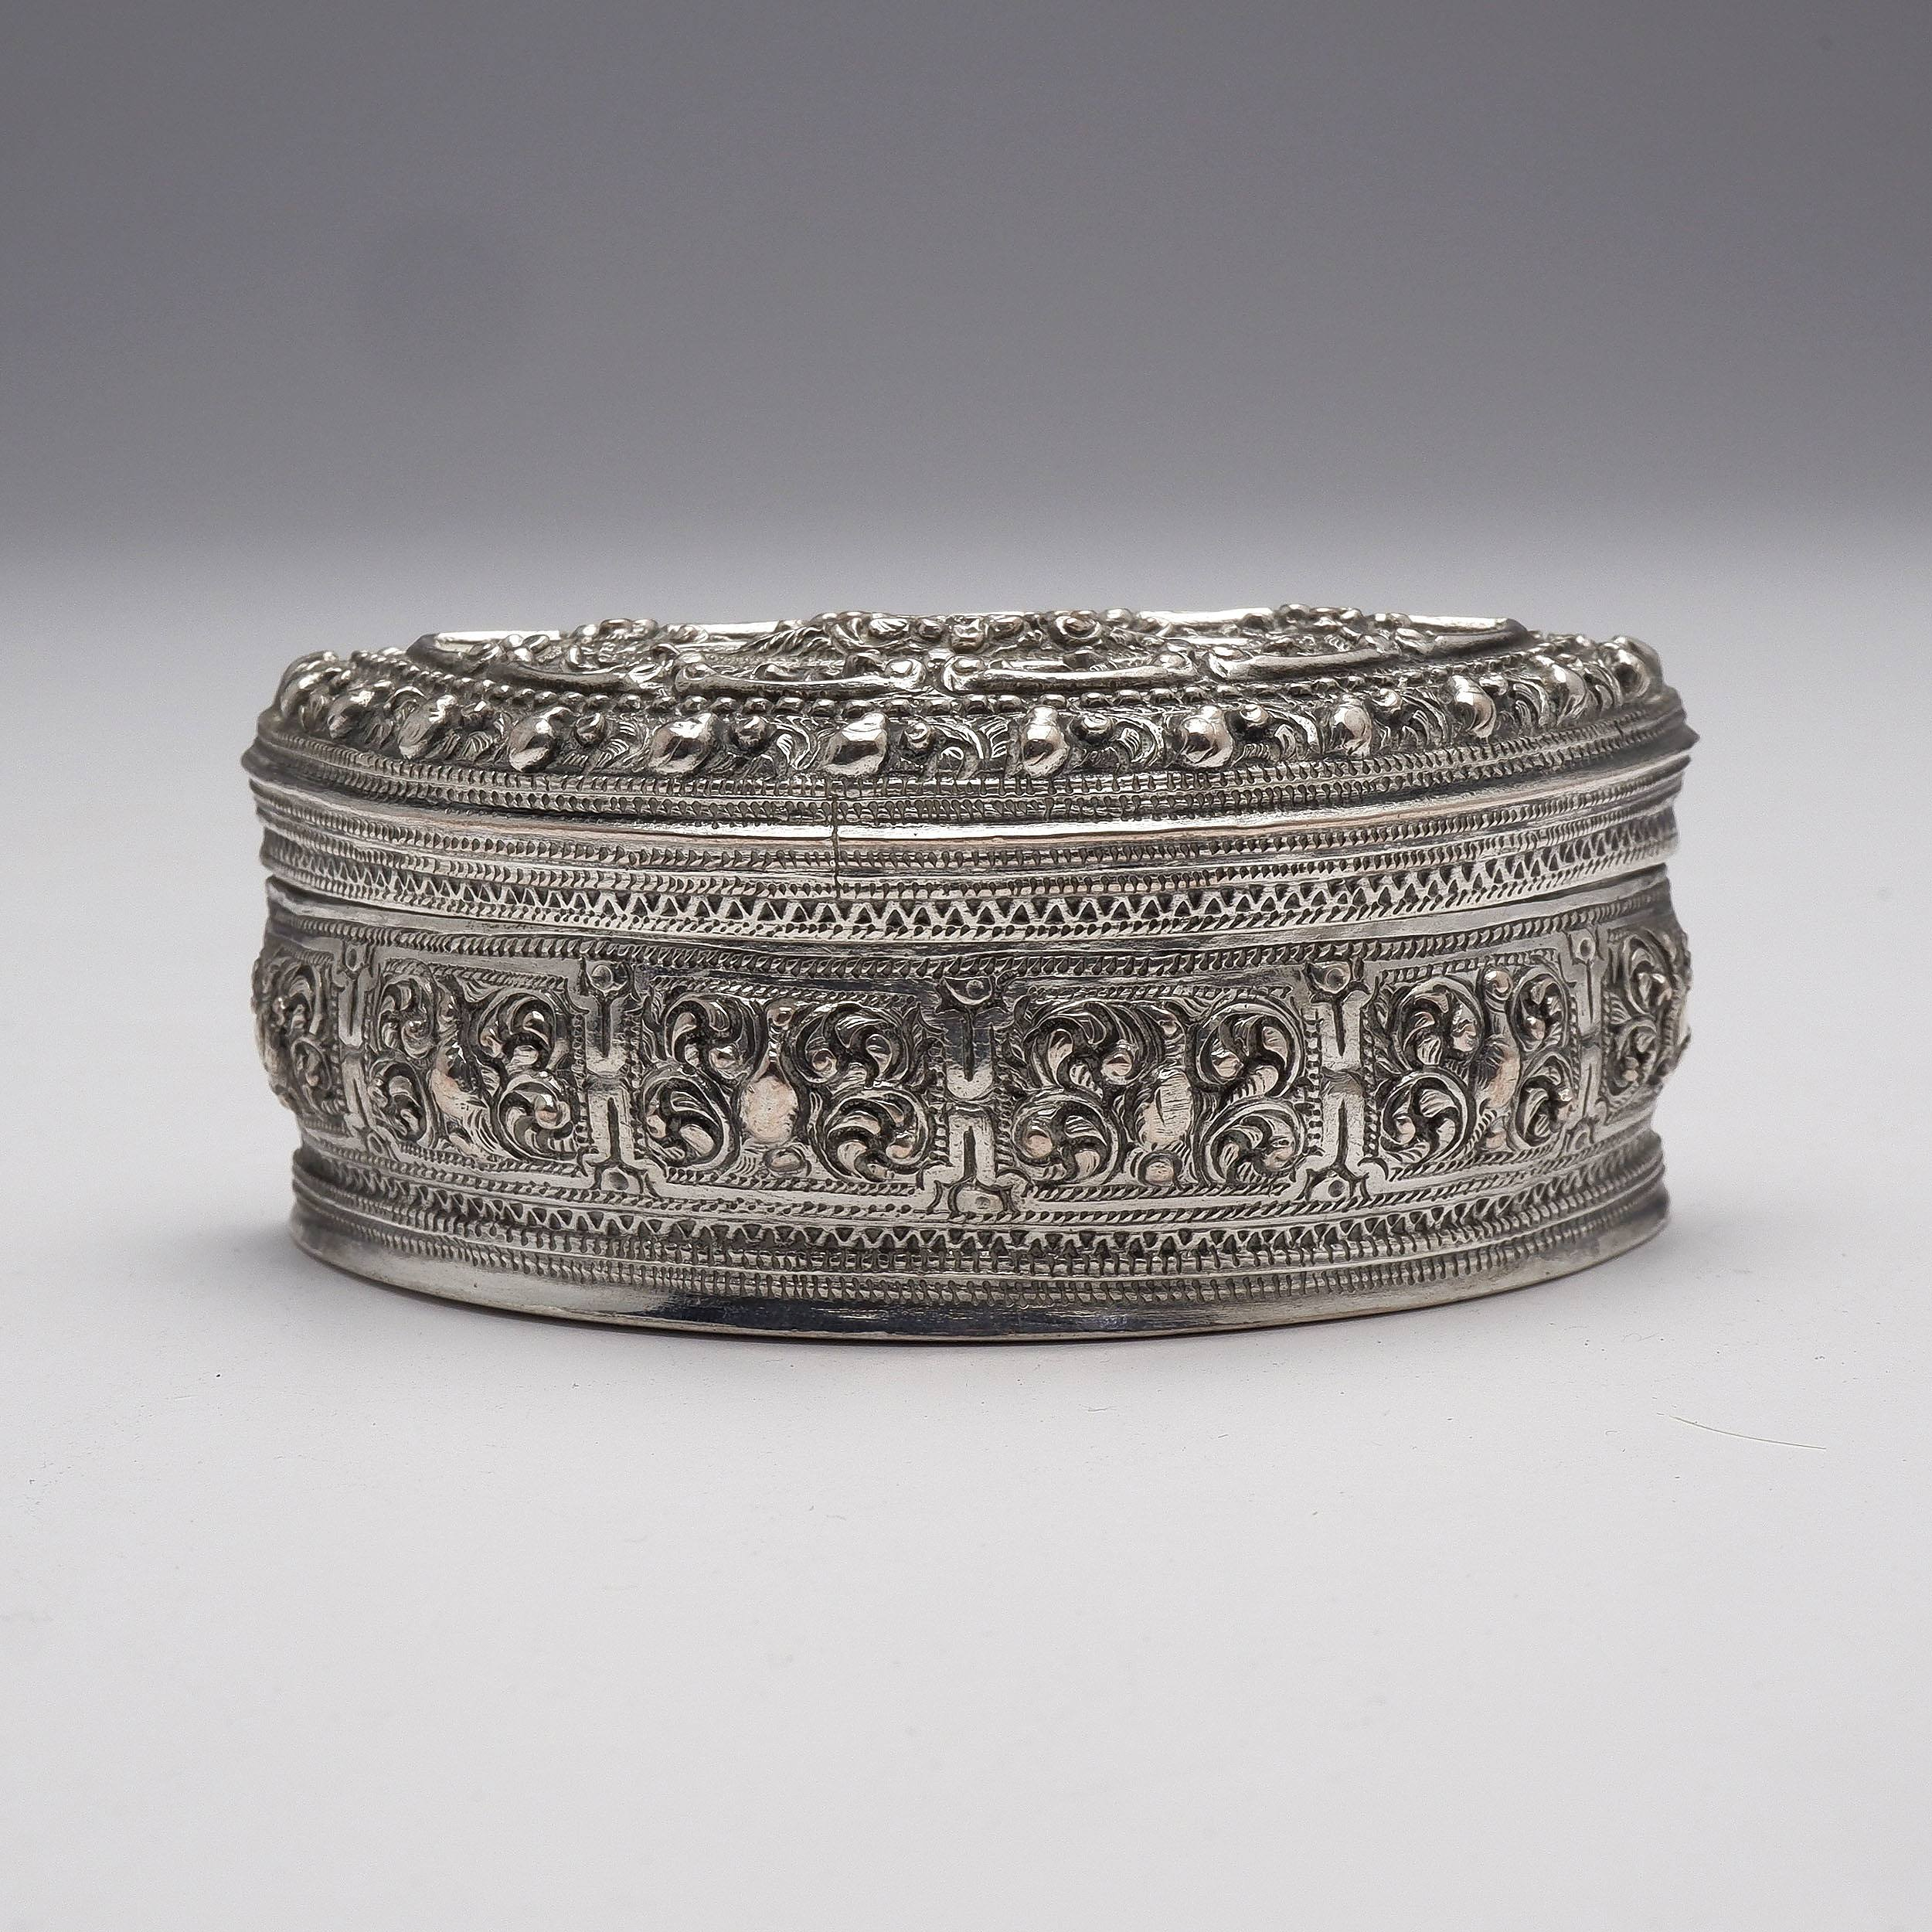 'Burmese Heavily Repousse and Engraved Silver Semicircular Box, 141g'